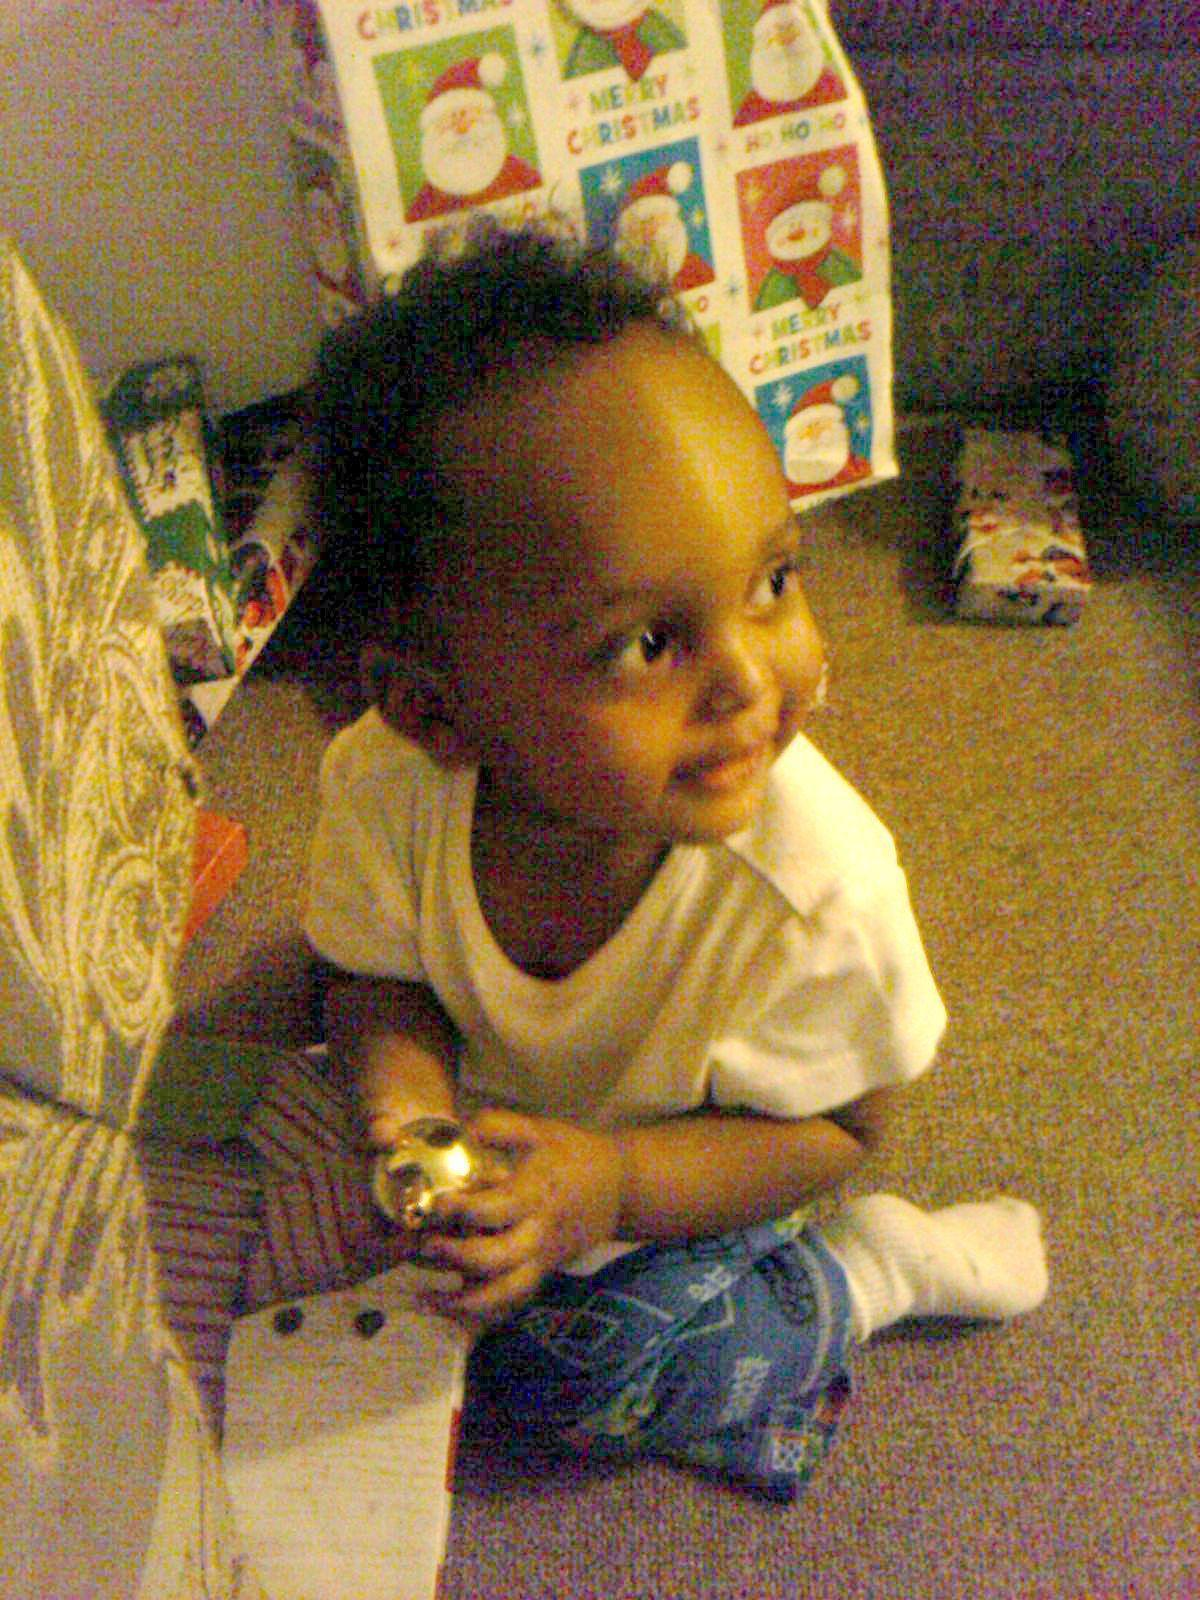 After charge dropped, coroner to hold inquest into Mount Pleasant toddler's death